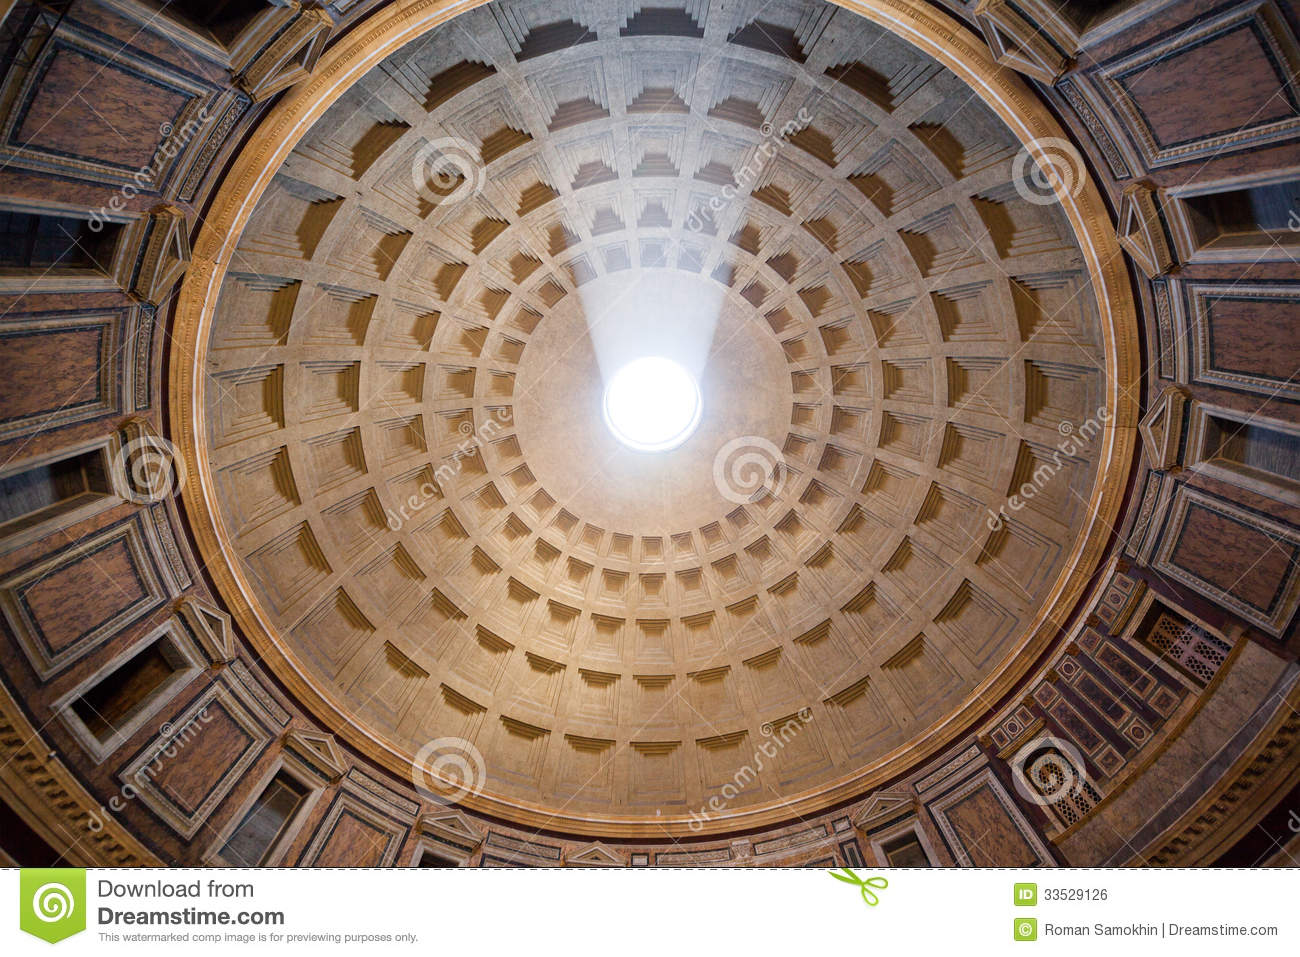 Rome's Pantheon may have been built as a massive sundial ...